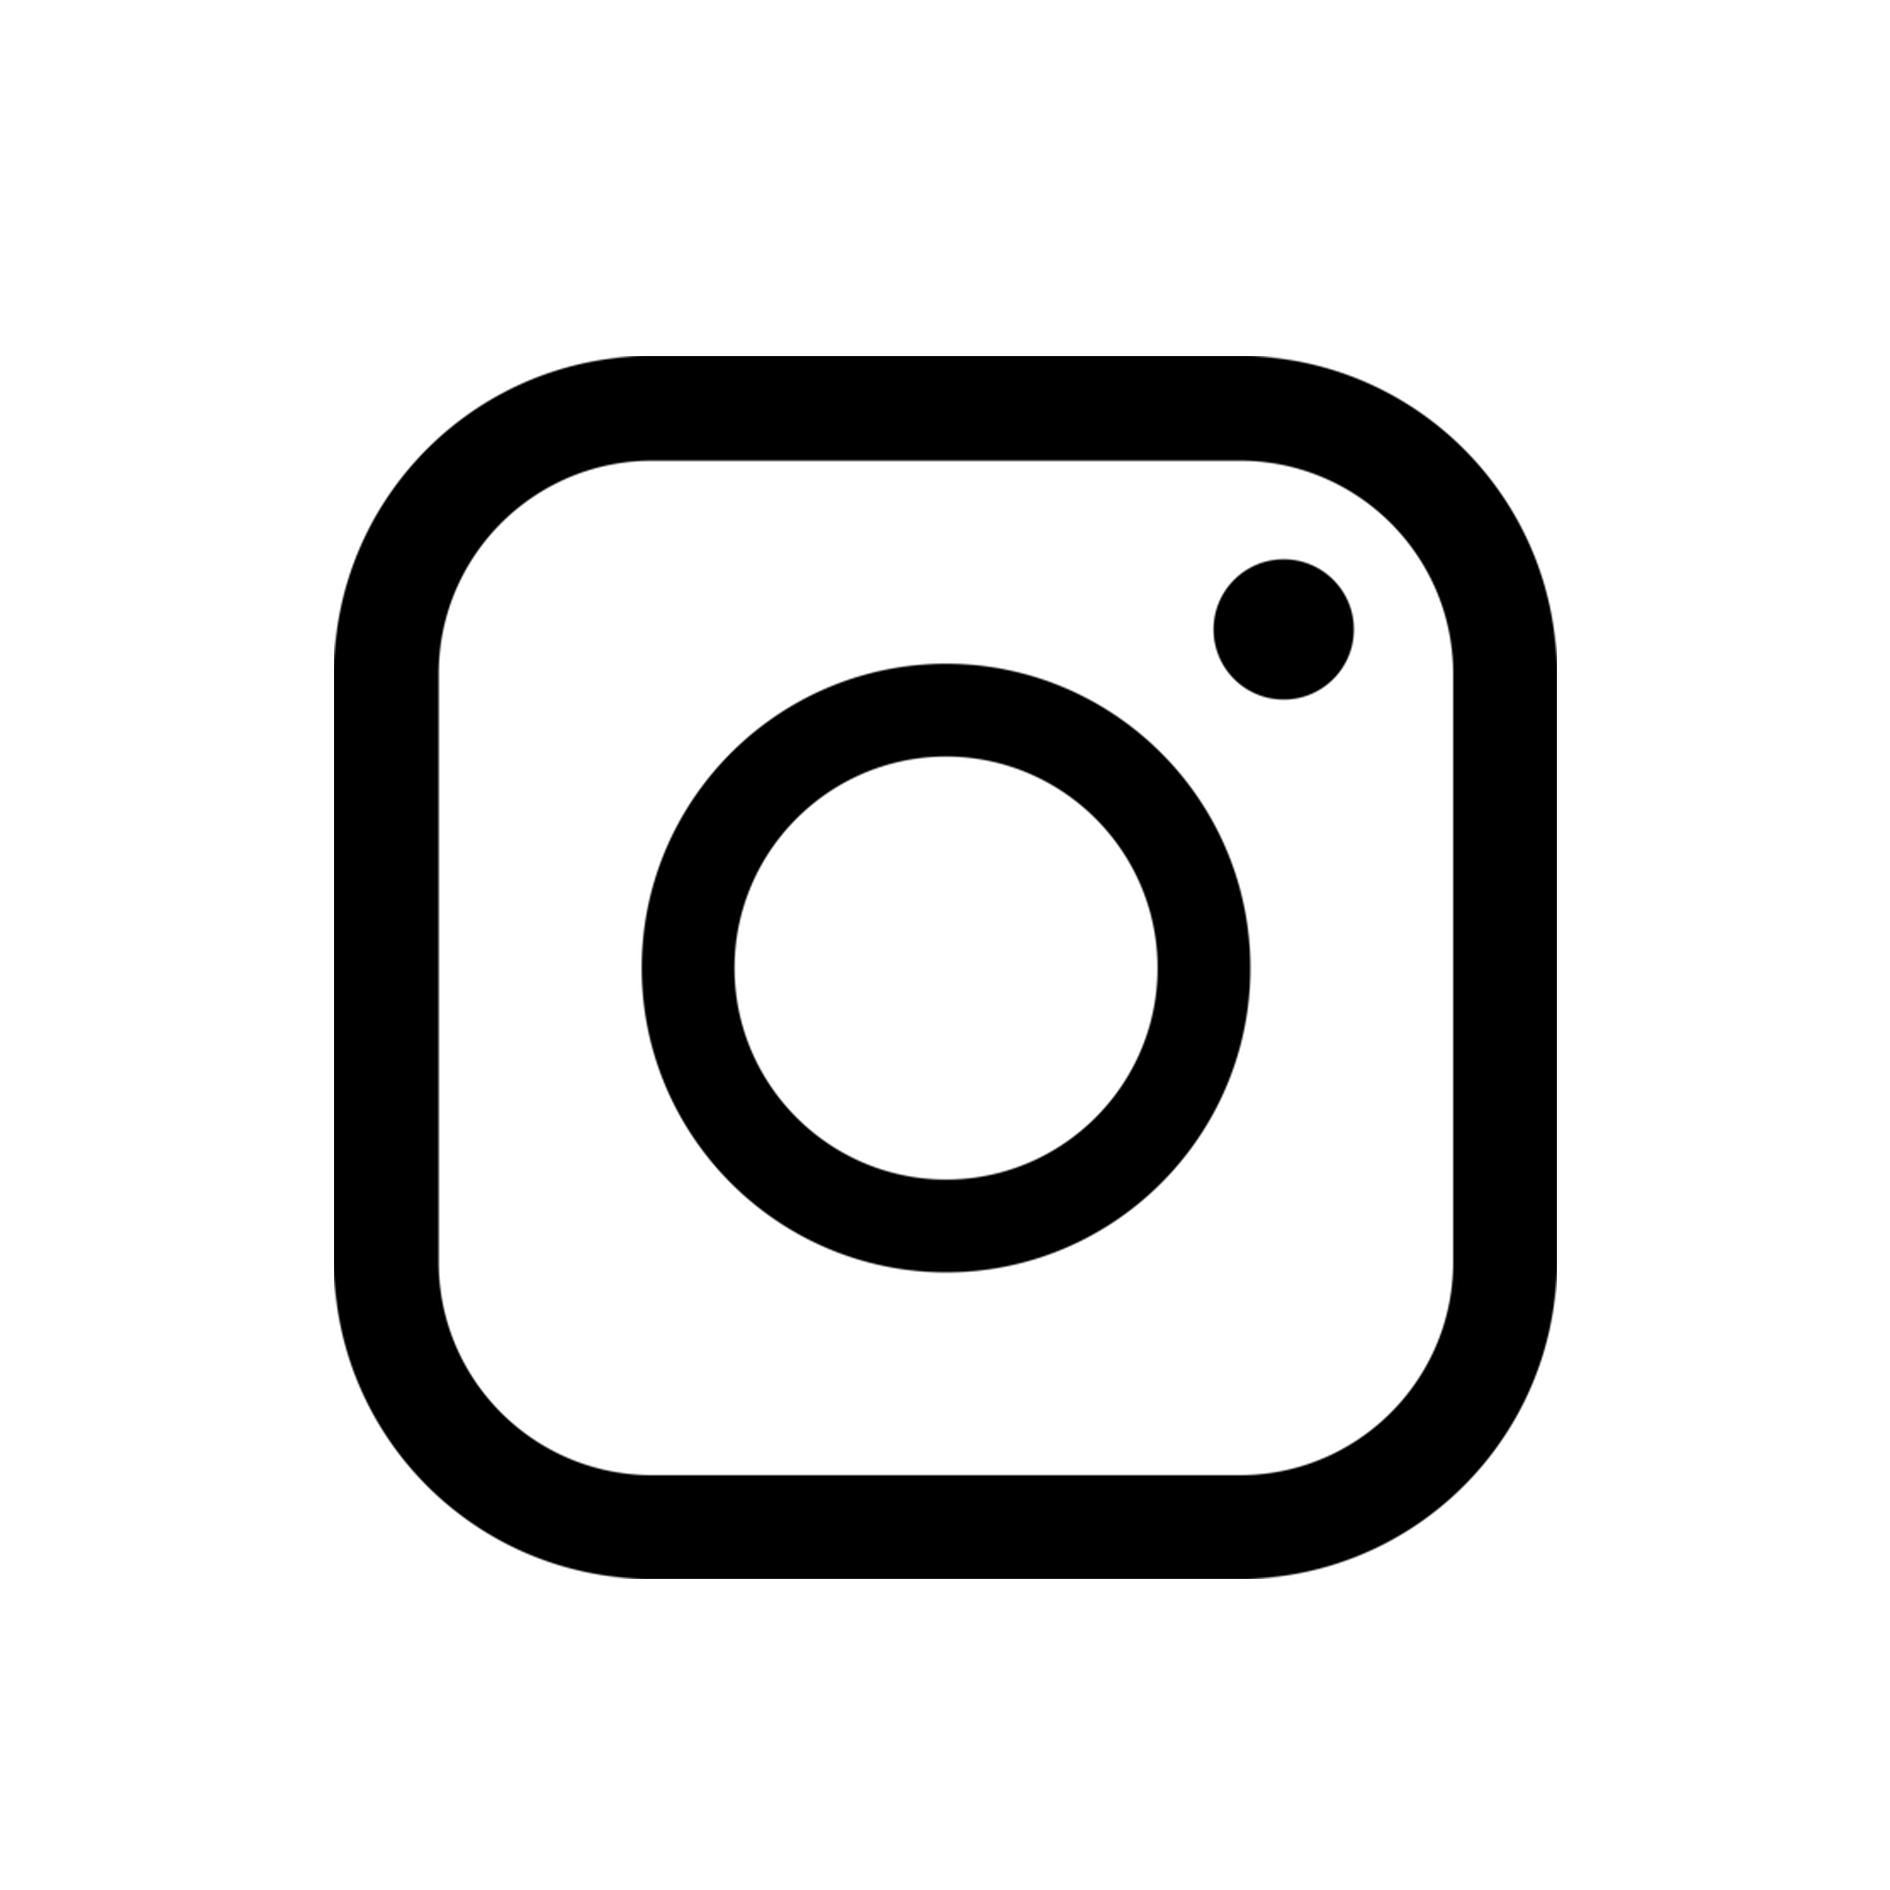 Download logo instagram png. With white circle background